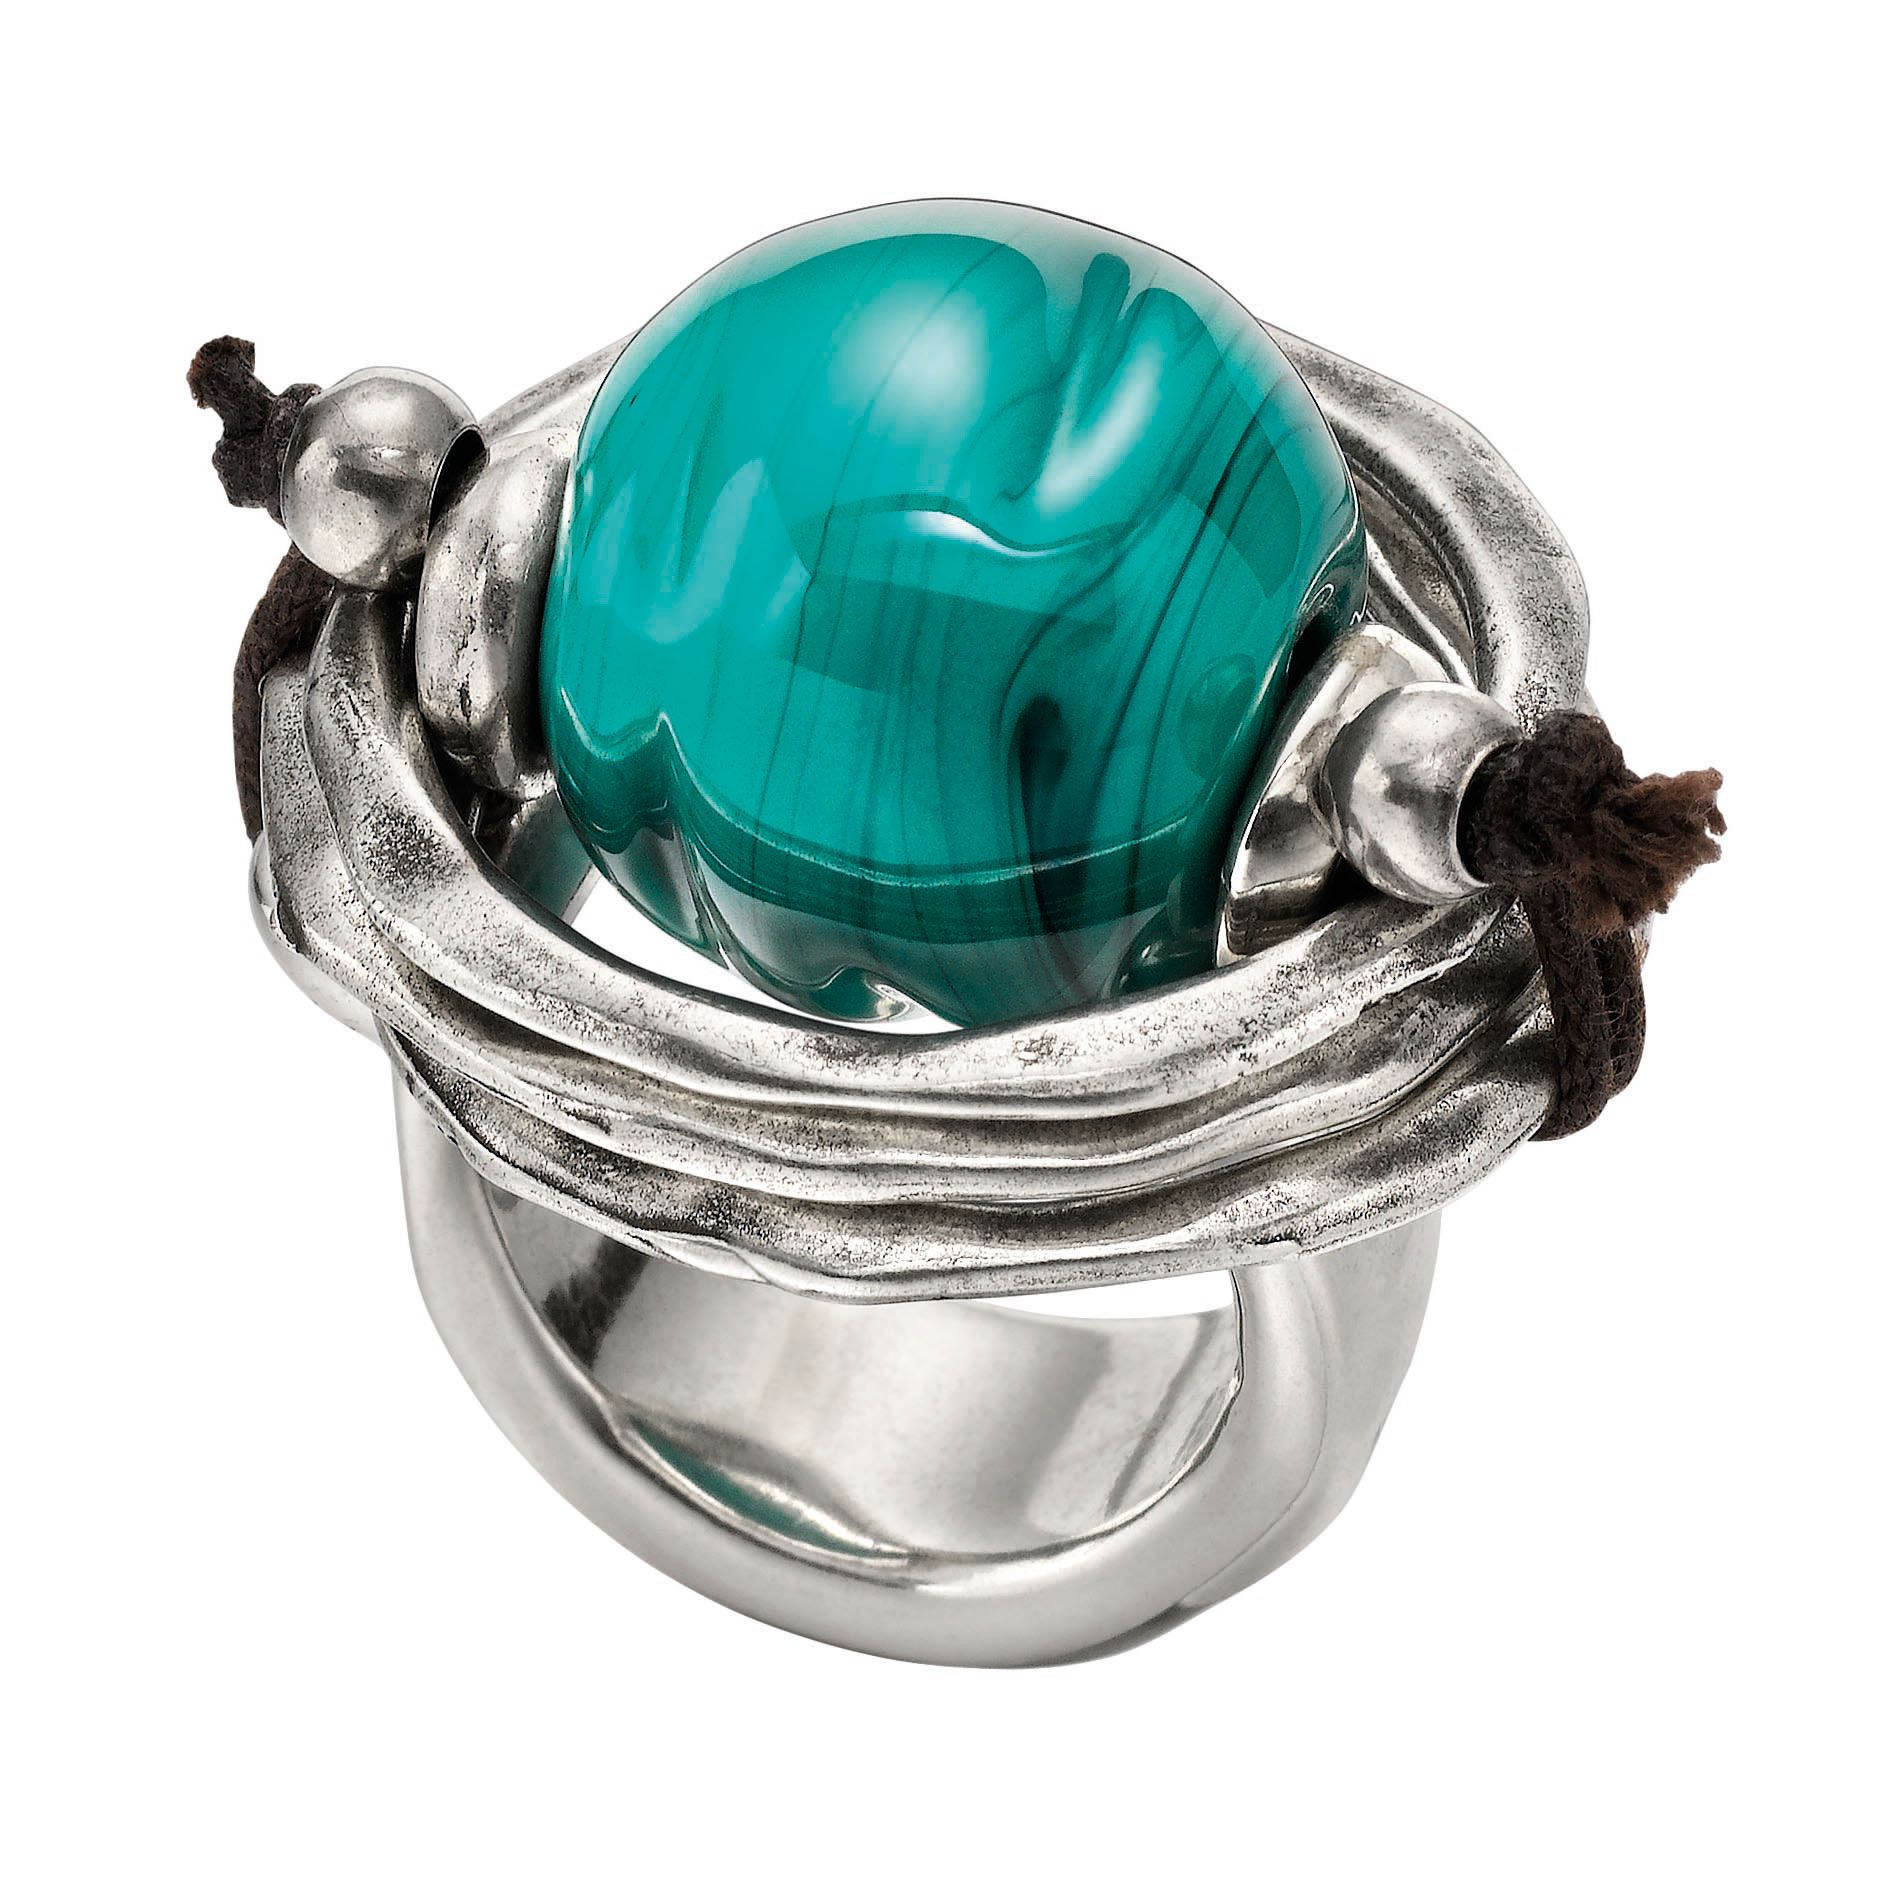 Silver-plated metal ring with a large green Murano glass sphere set in the middle held with brown leather. With the uniquely unmistakable style of UNOde50, 100% handcrafted and made in Spain.